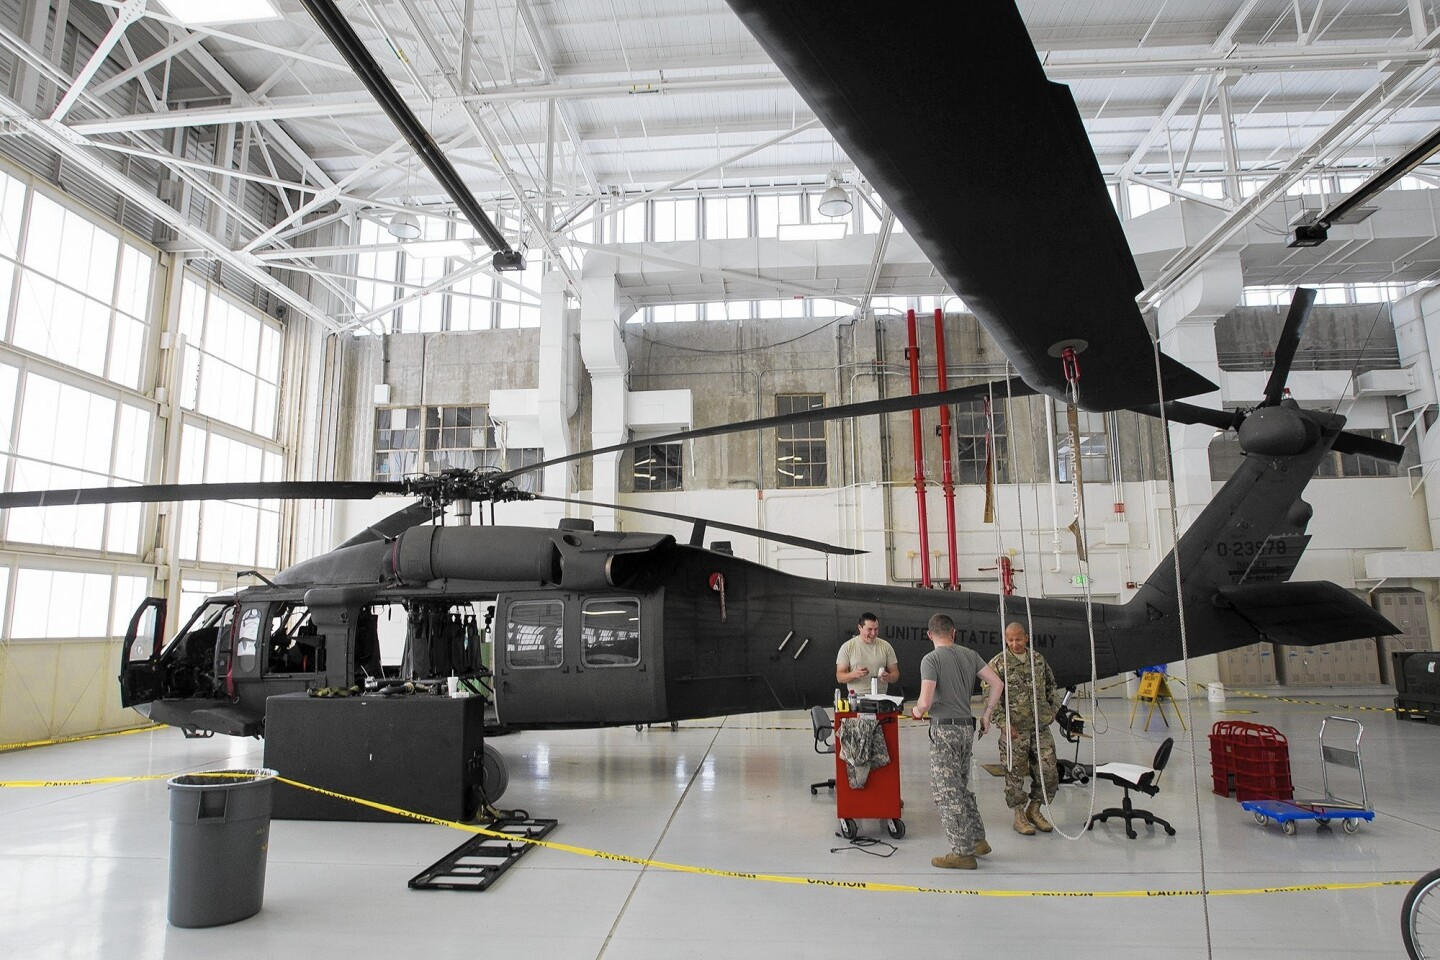 Sgt. Daniel Davis, left, Specialist Mark Enriquez, and Sgt. Sink Nuom, right, work on a UH-60 Black Hawk at the Los Alamitos Joint Forces Training Base on Monday.